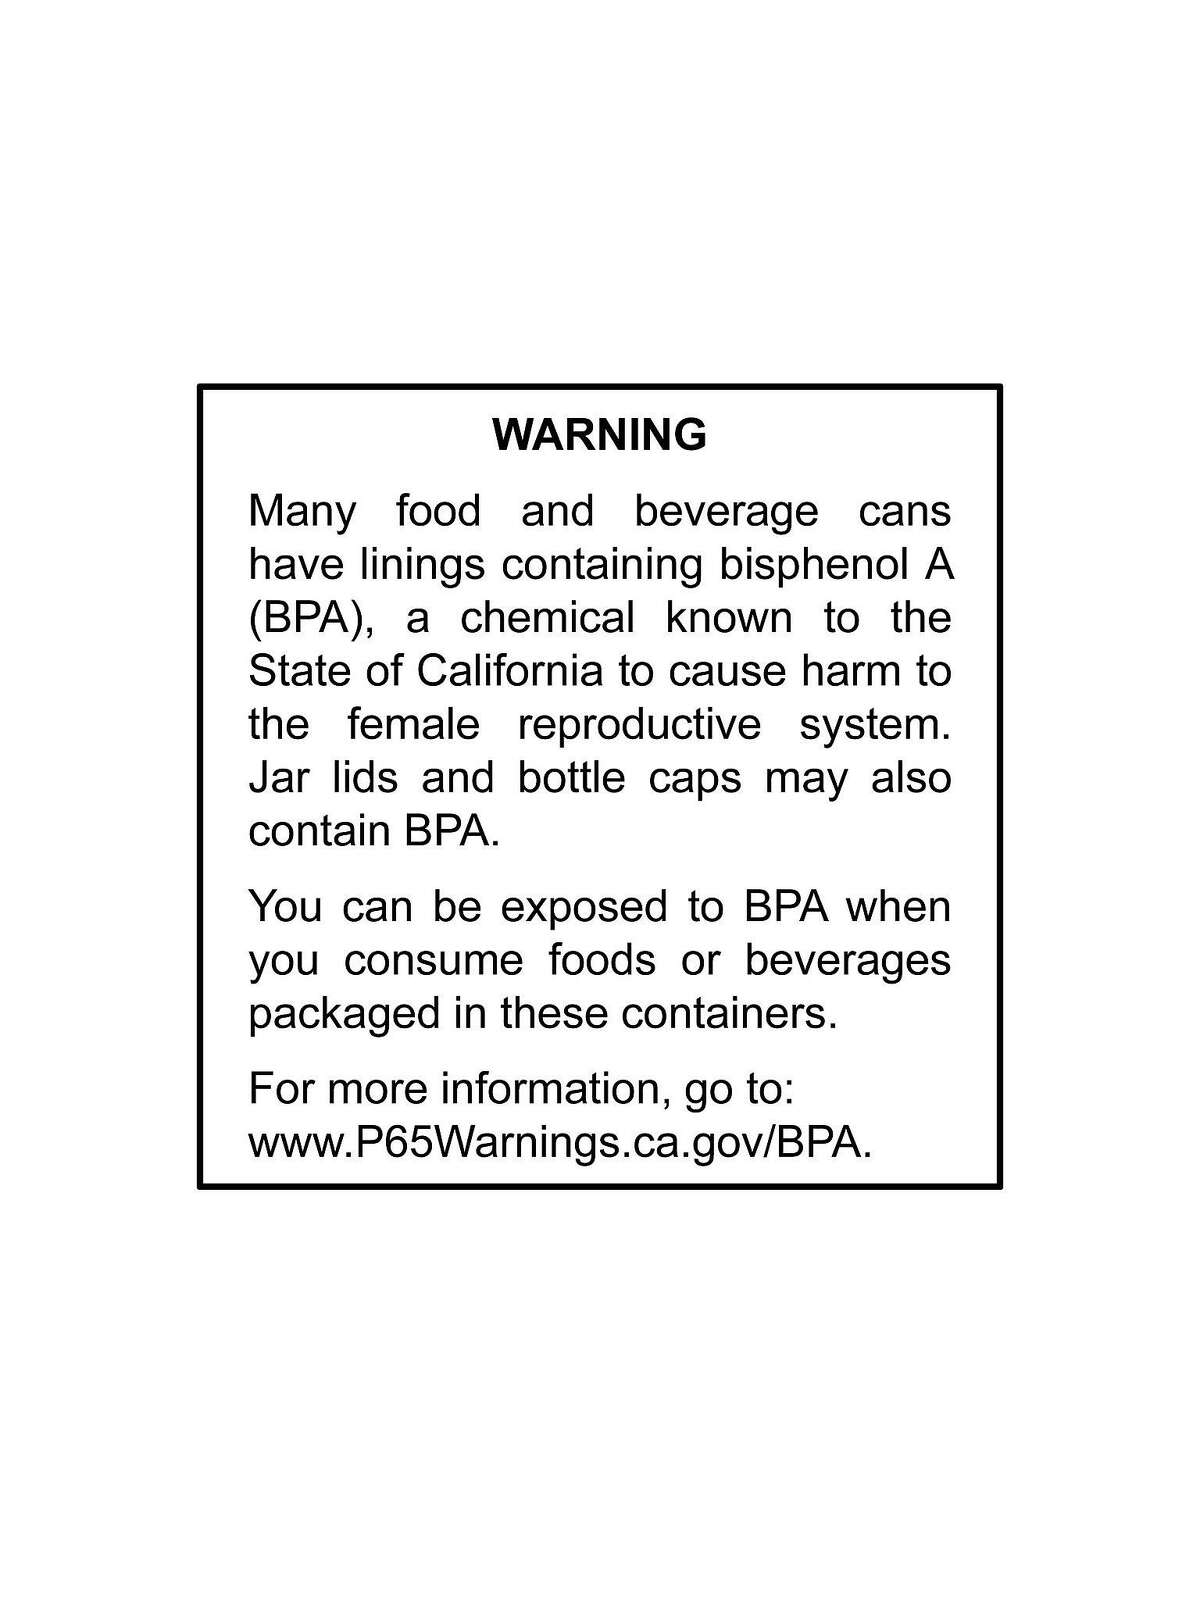 California's Proposition 65 requires businesses to determine if they must provide this general warning about exposures to listed chemicals.